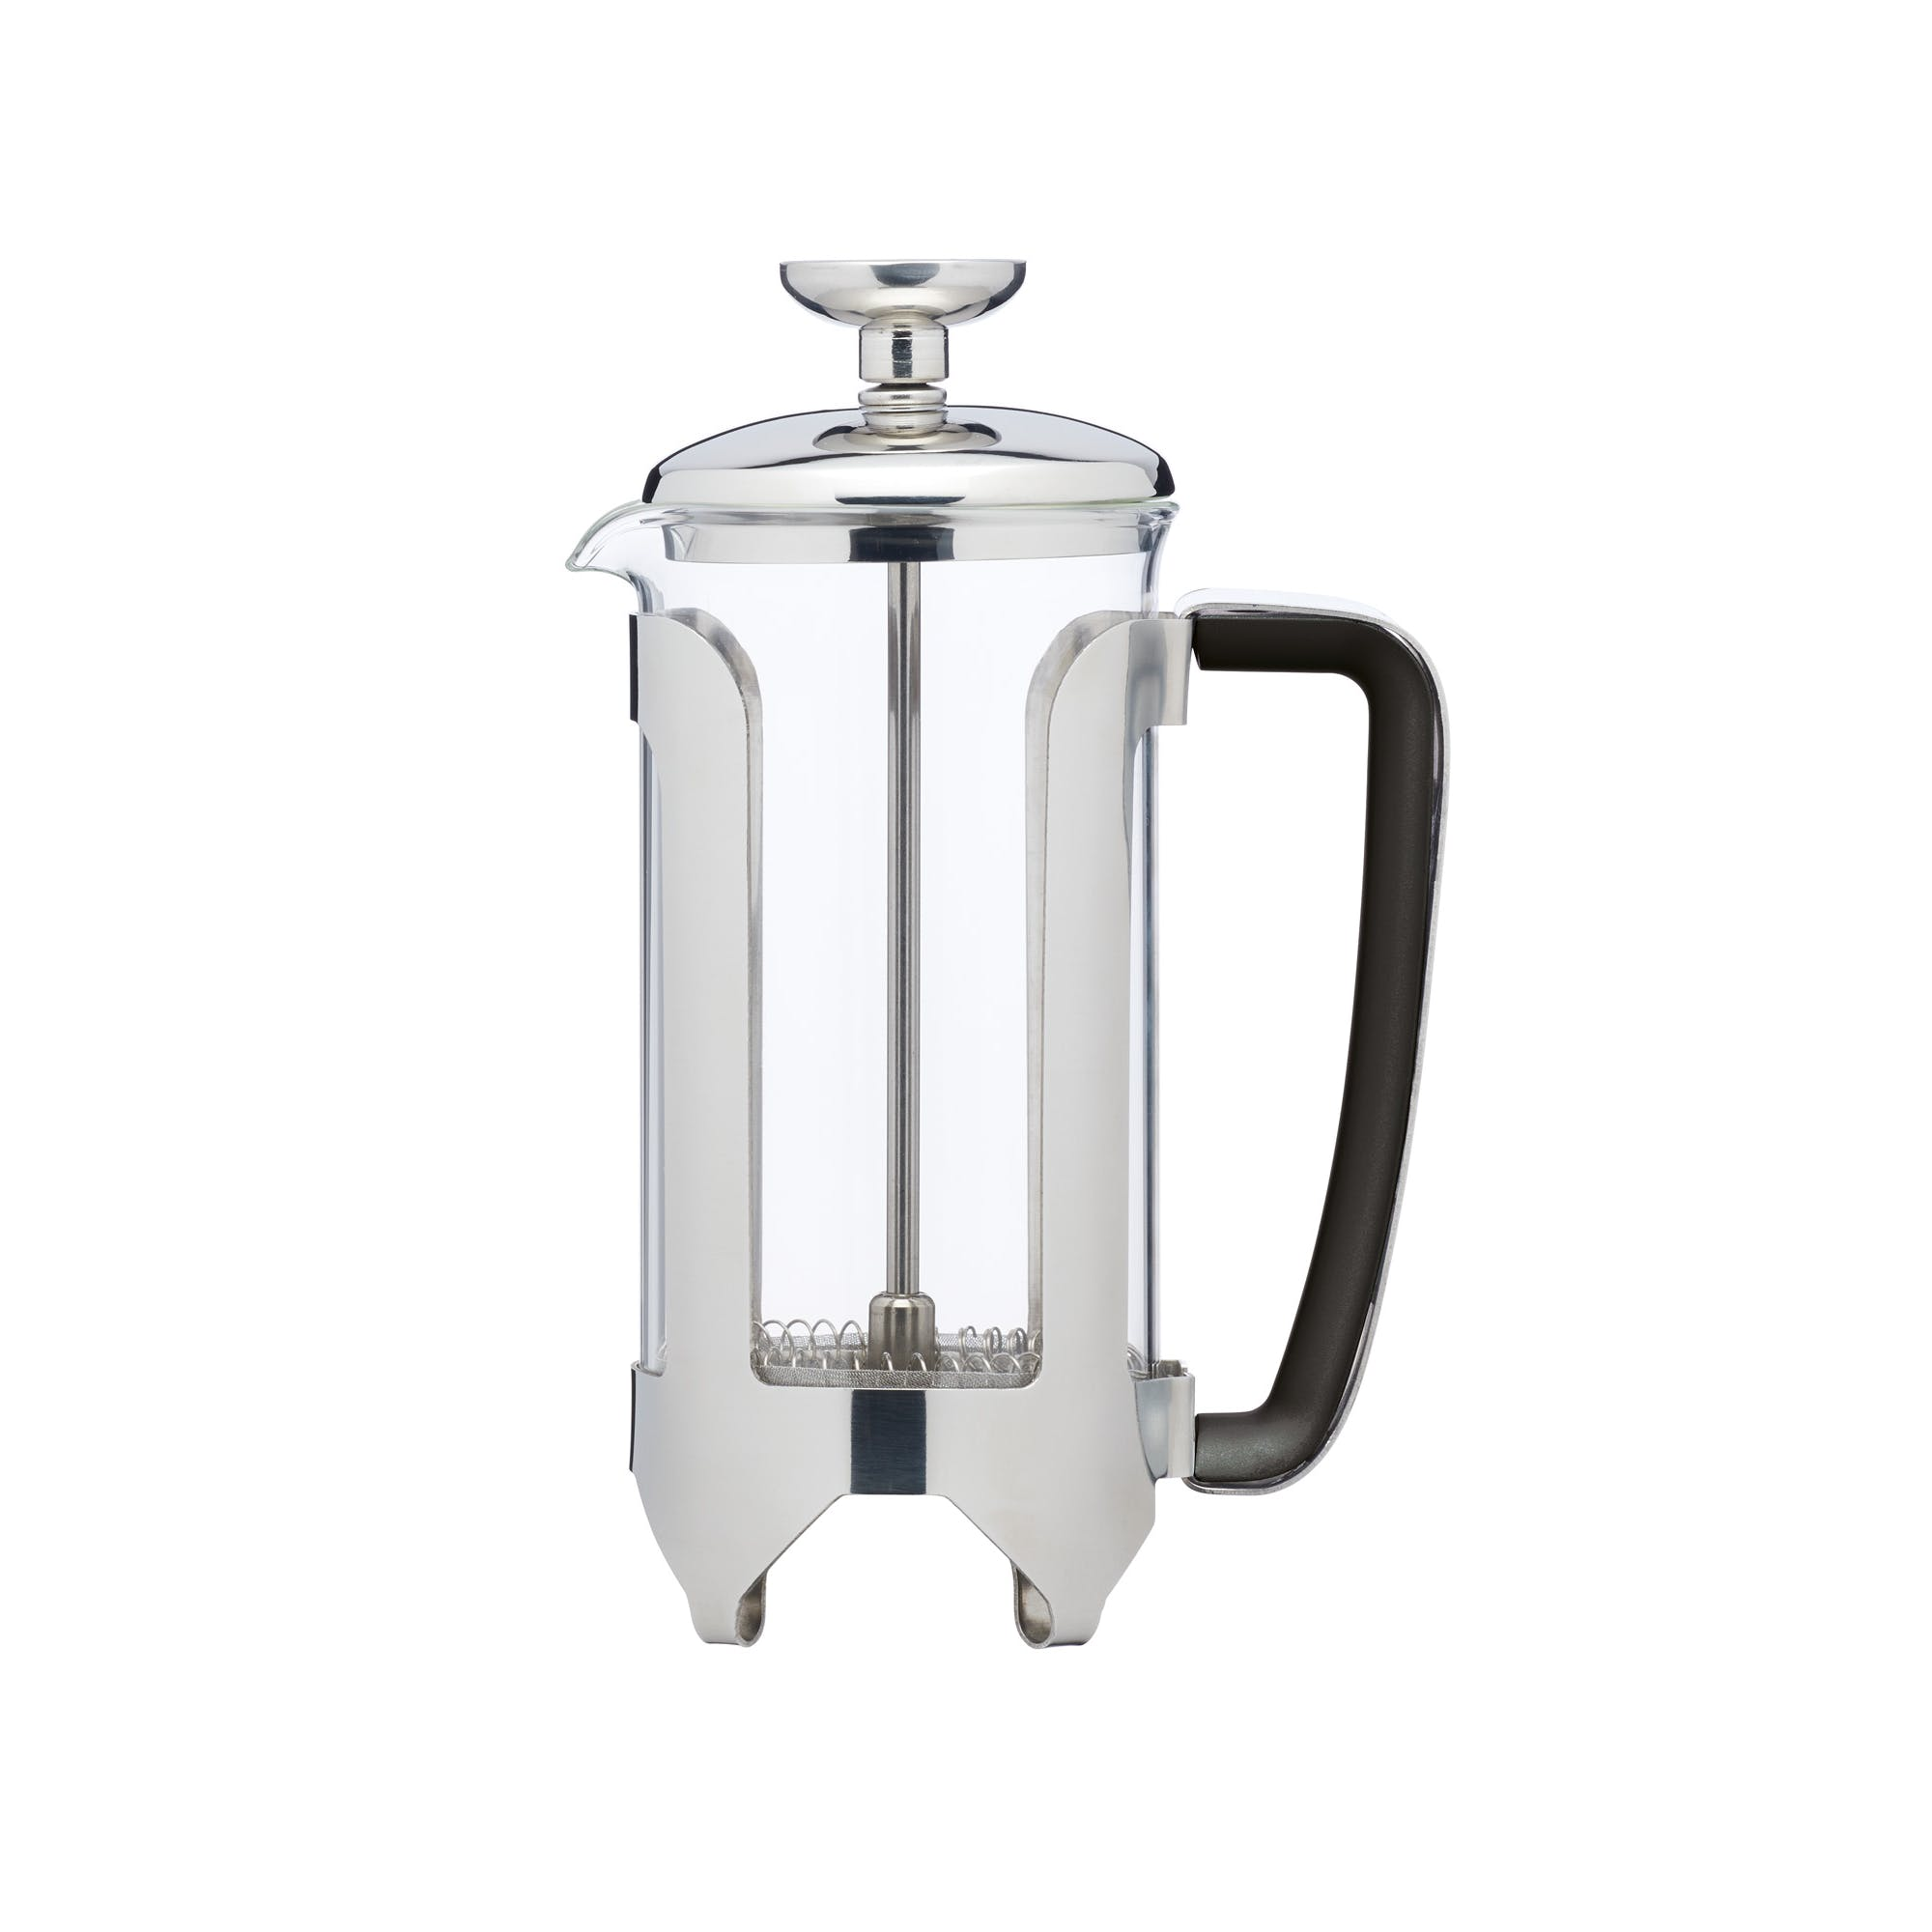 Stainless Steel Glass Cafetiere Chrome Finish In 3 Cup 6 Cup 8 12 Cup